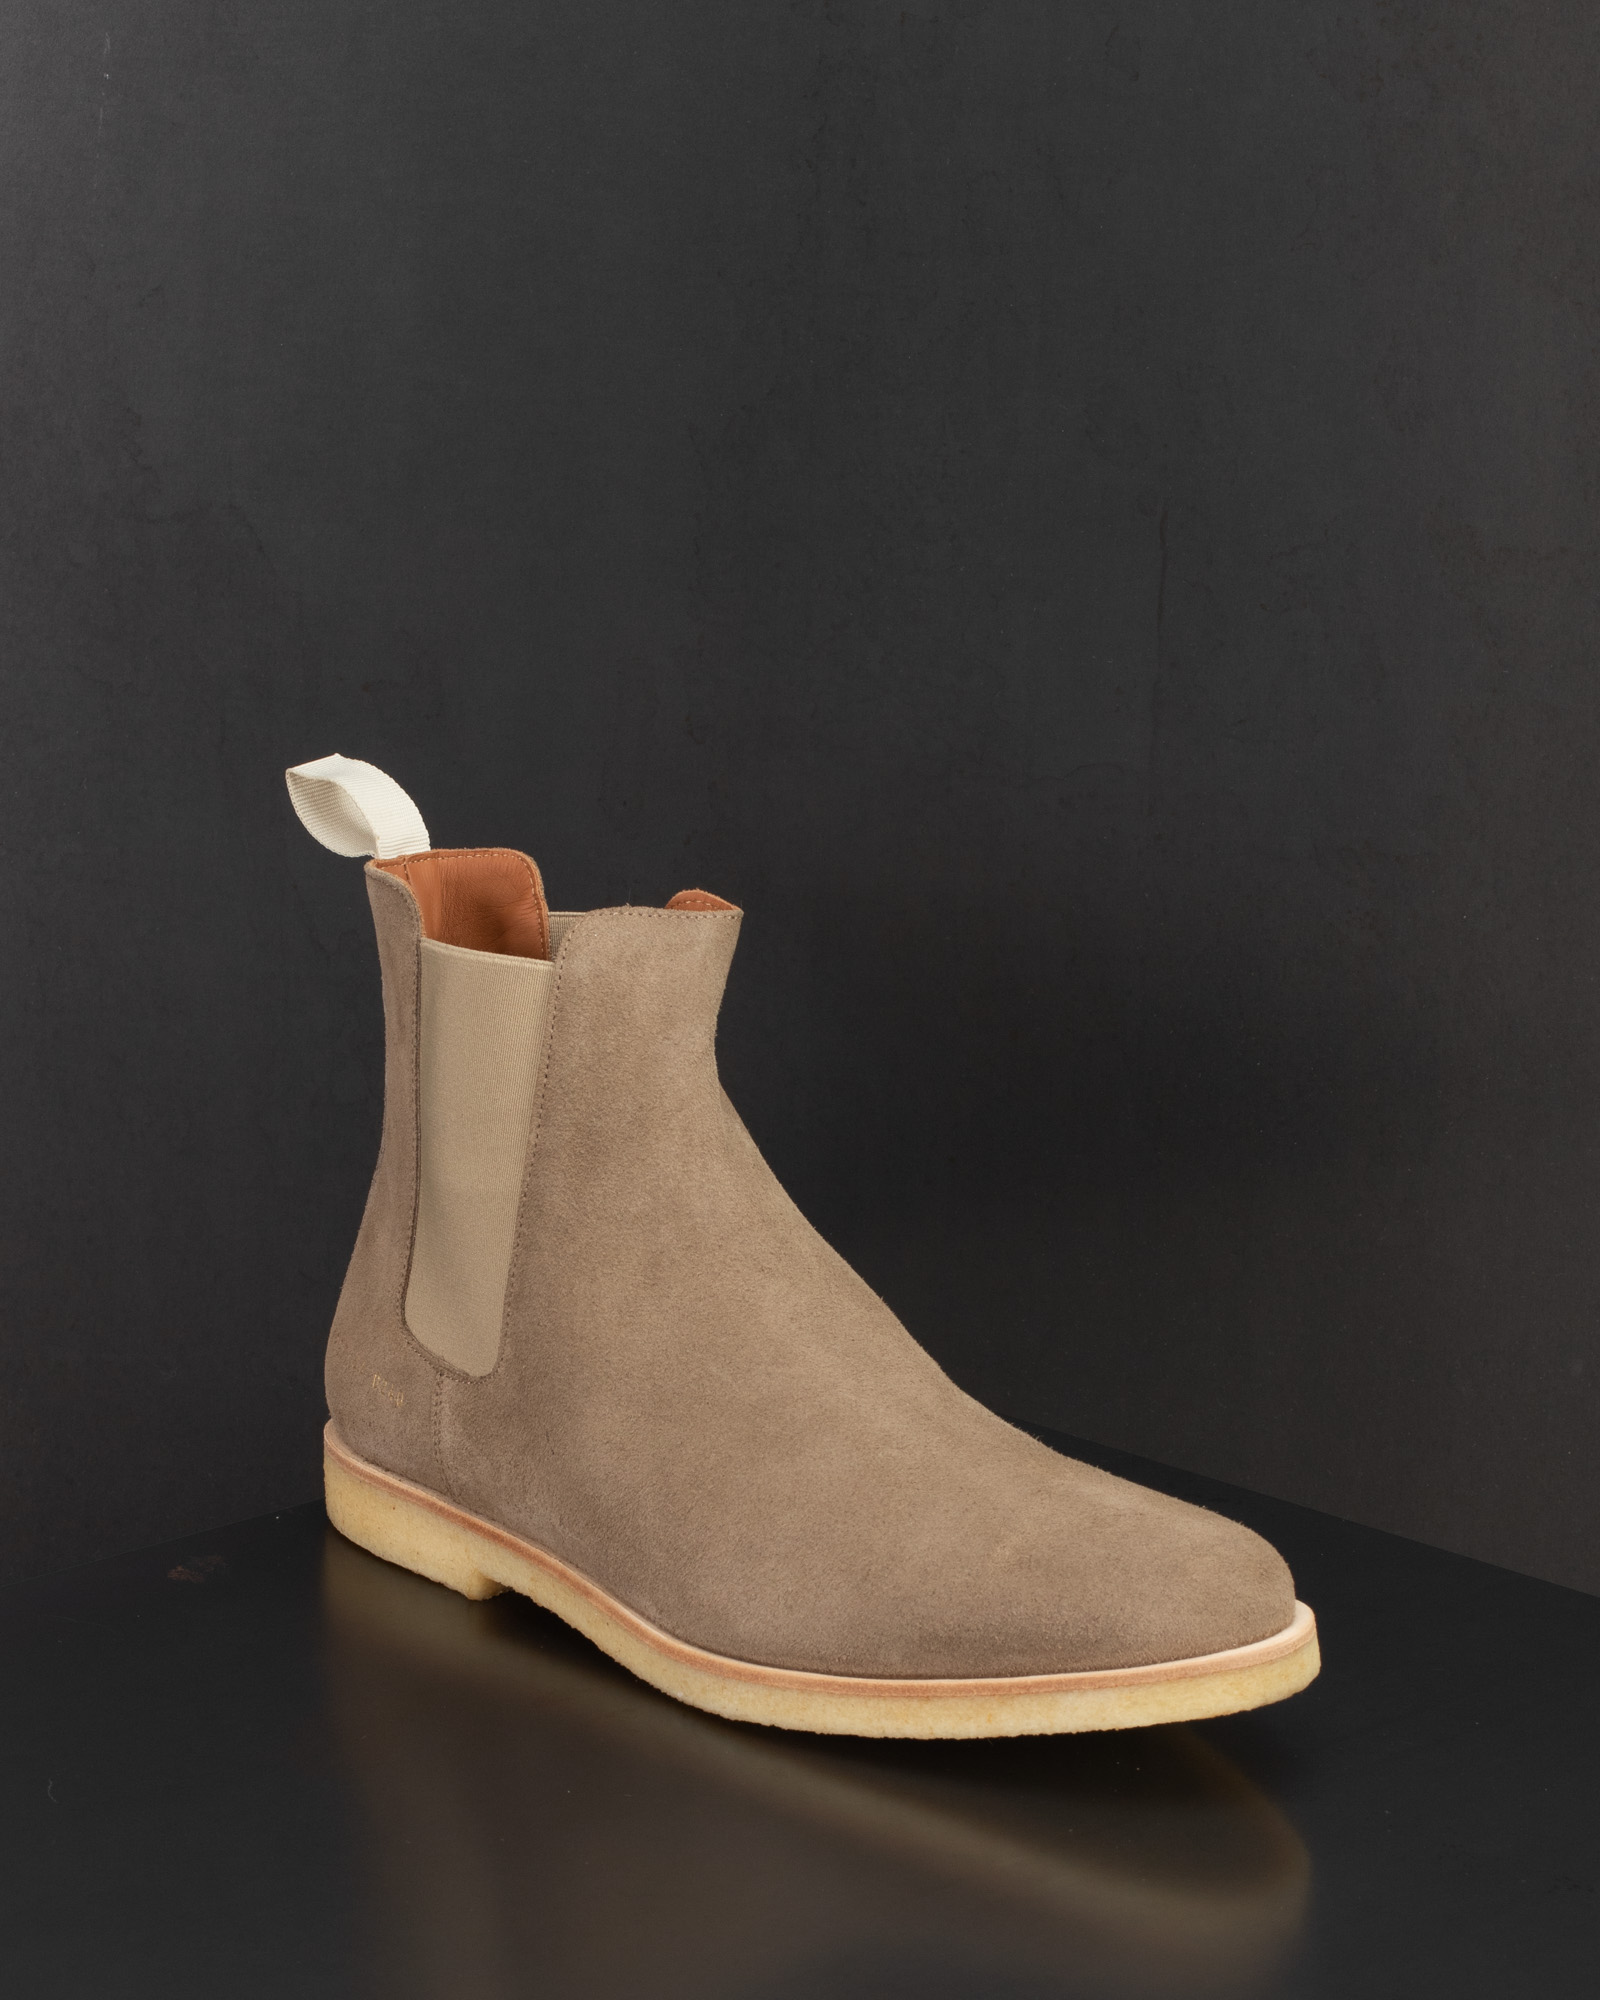 CHELSEA BOOT IN SUEDE TAUPE by Common